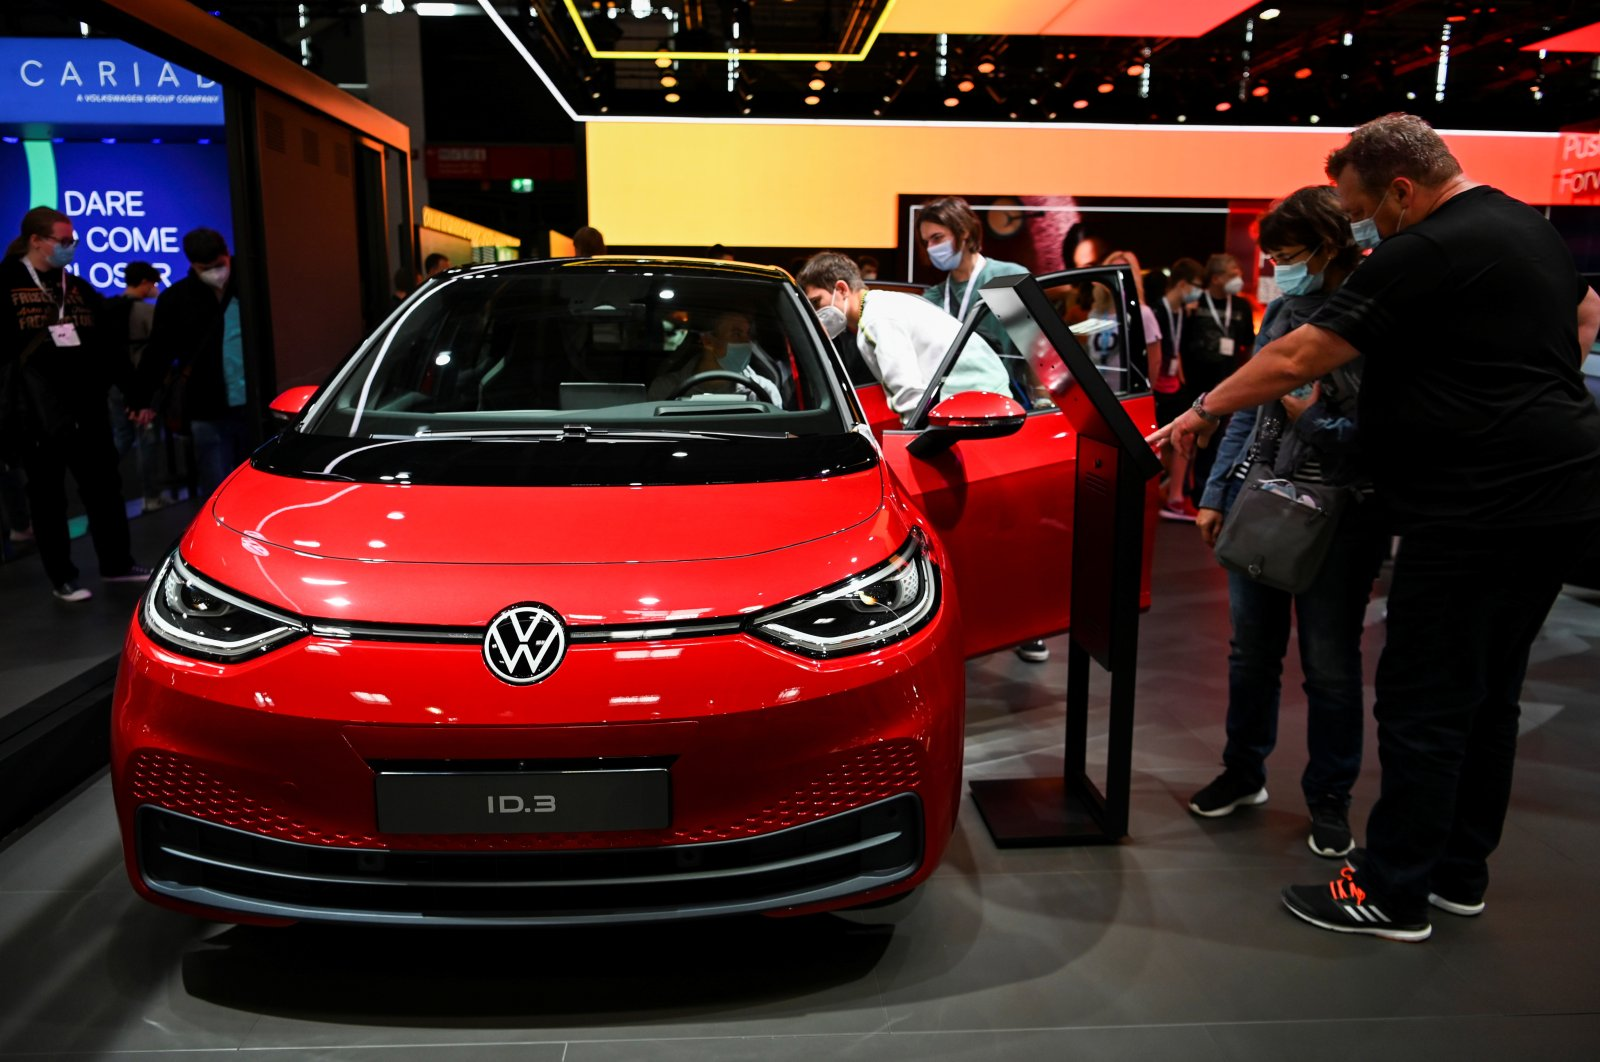 Visitors look at a Volkswagen ID3 car during the Munich Auto Show IAA Mobility 2021 in Munich, Germany, Sept. 11, 2021. (REUTERS Photo)